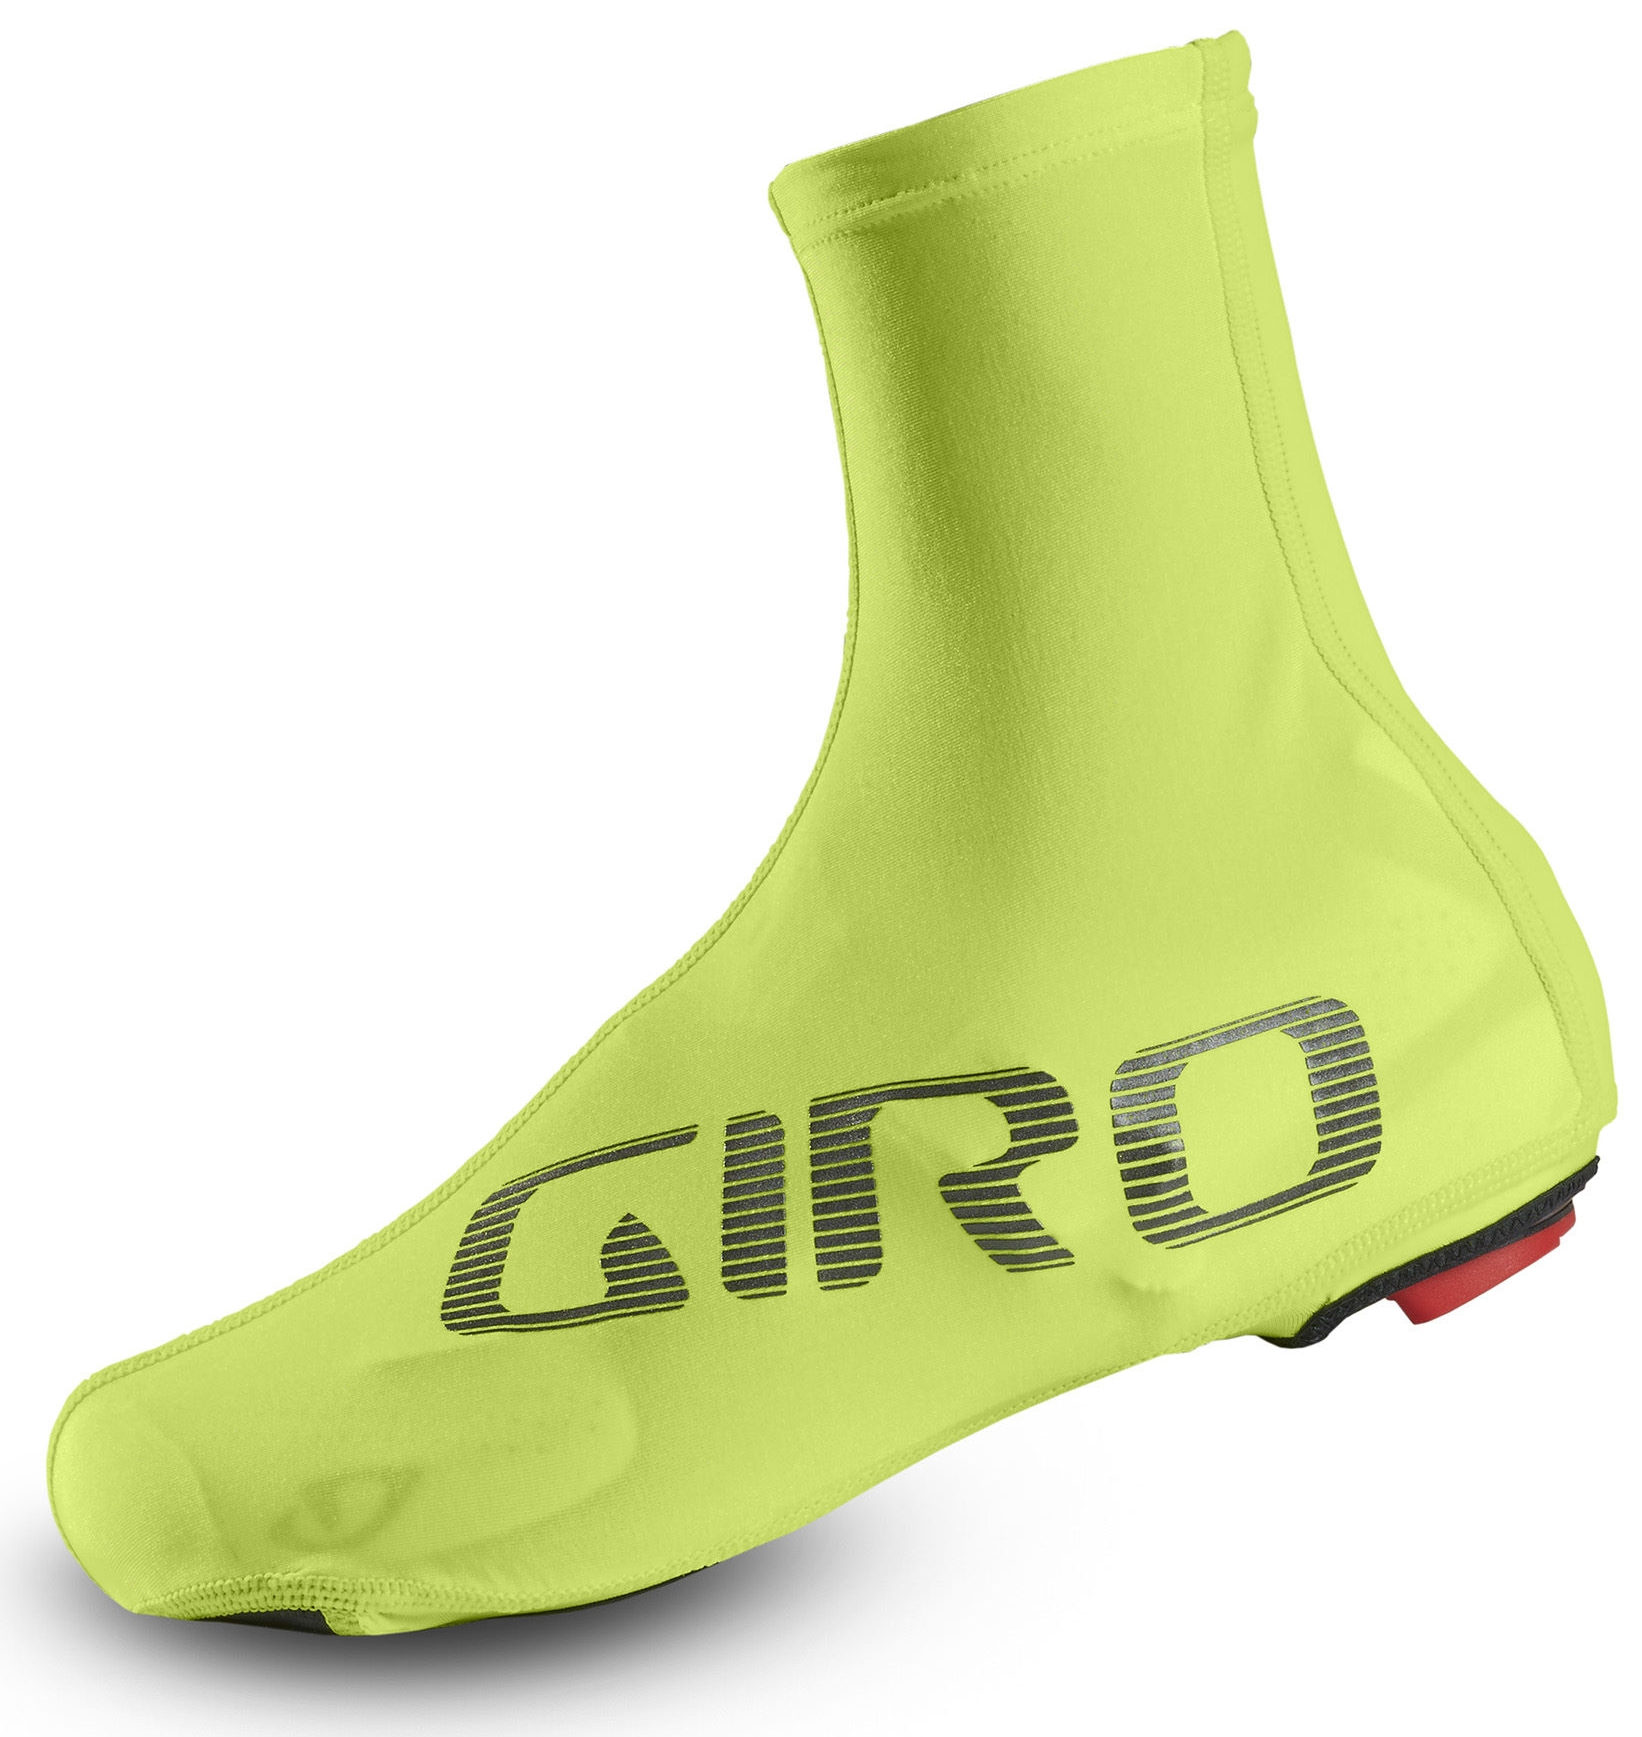 galoŠe giro ultralight aero highlight yellow